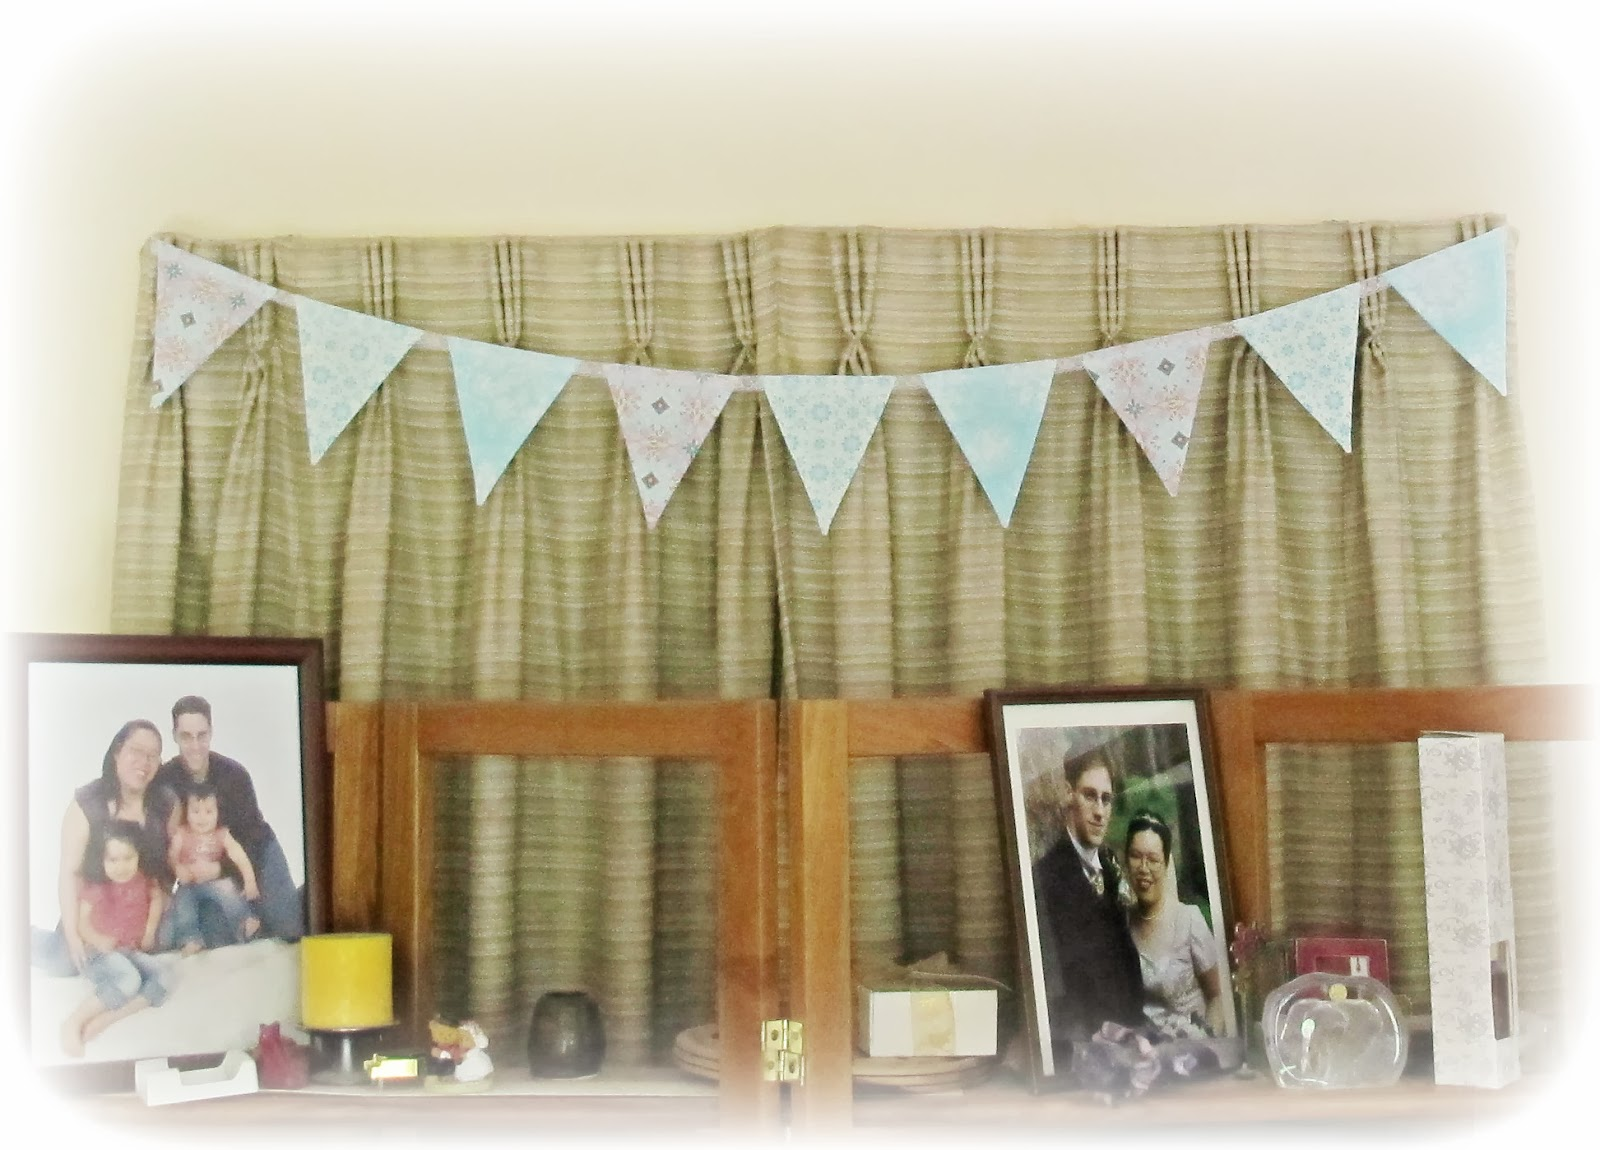 image aqua blue bunting dena designs free spirit pretty little things white lace homespun